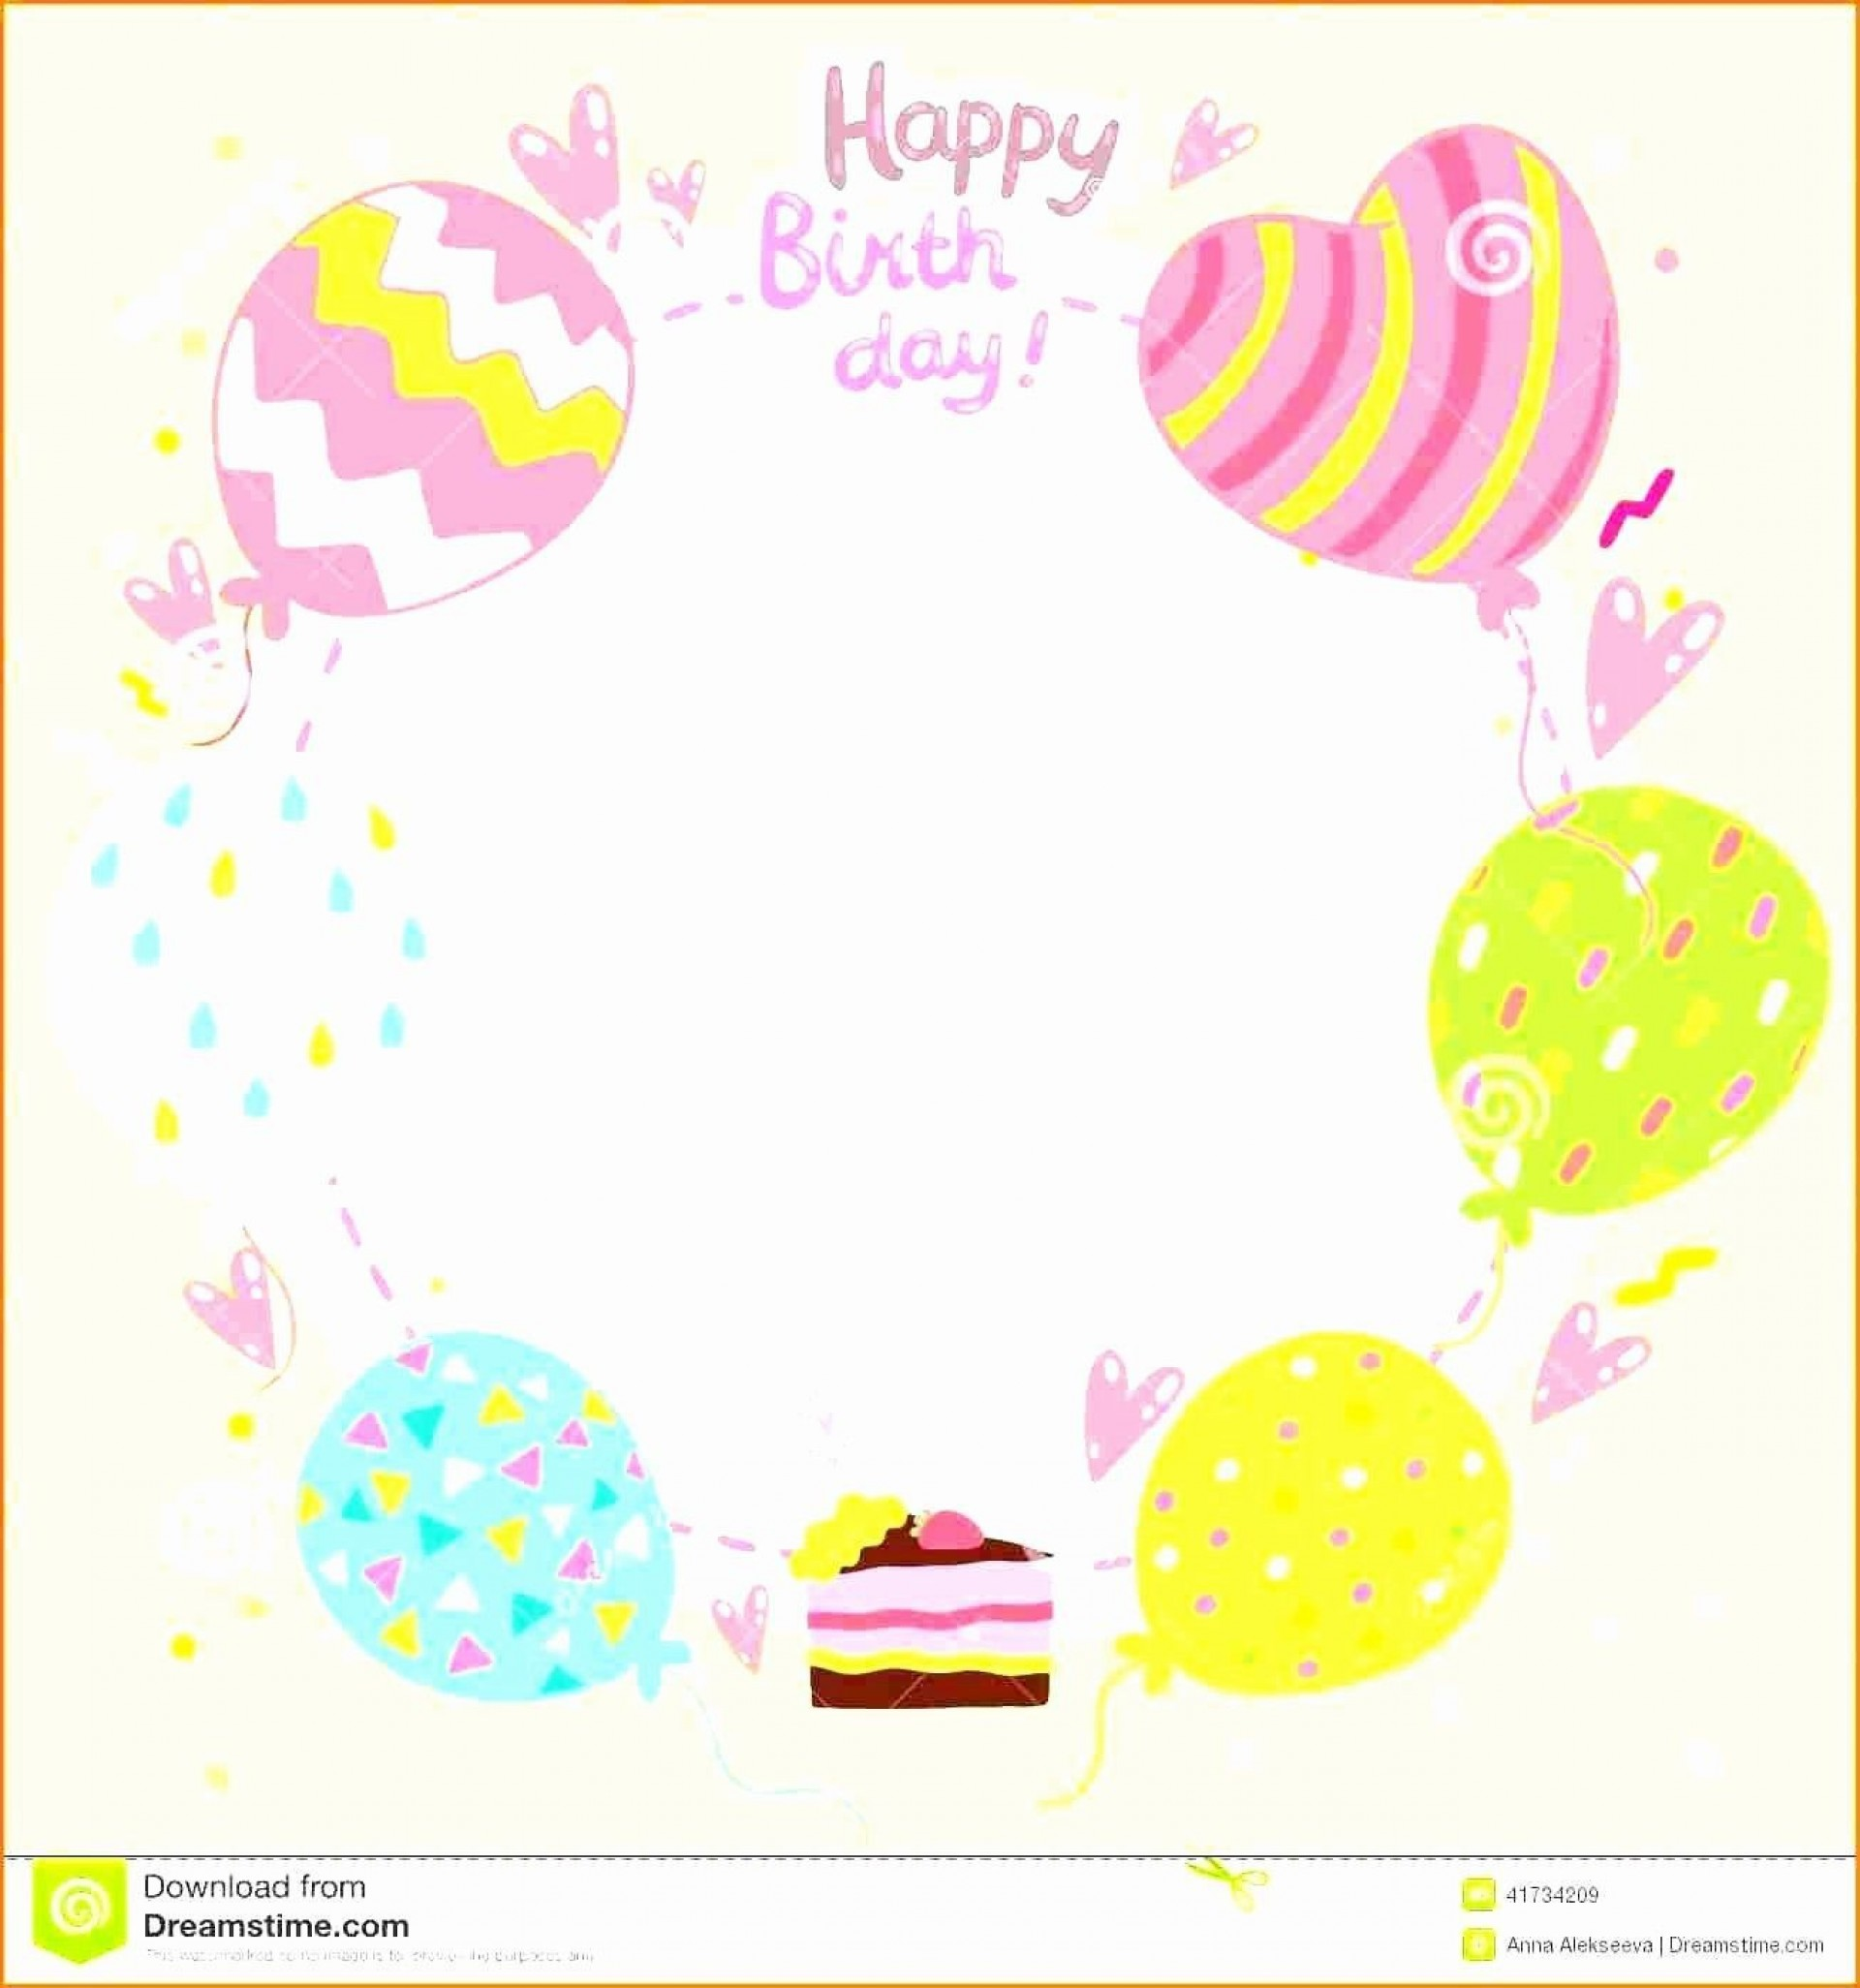 000 Excellent Birthday Card Template Free Inspiration  Invitation Photoshop Download Word1920